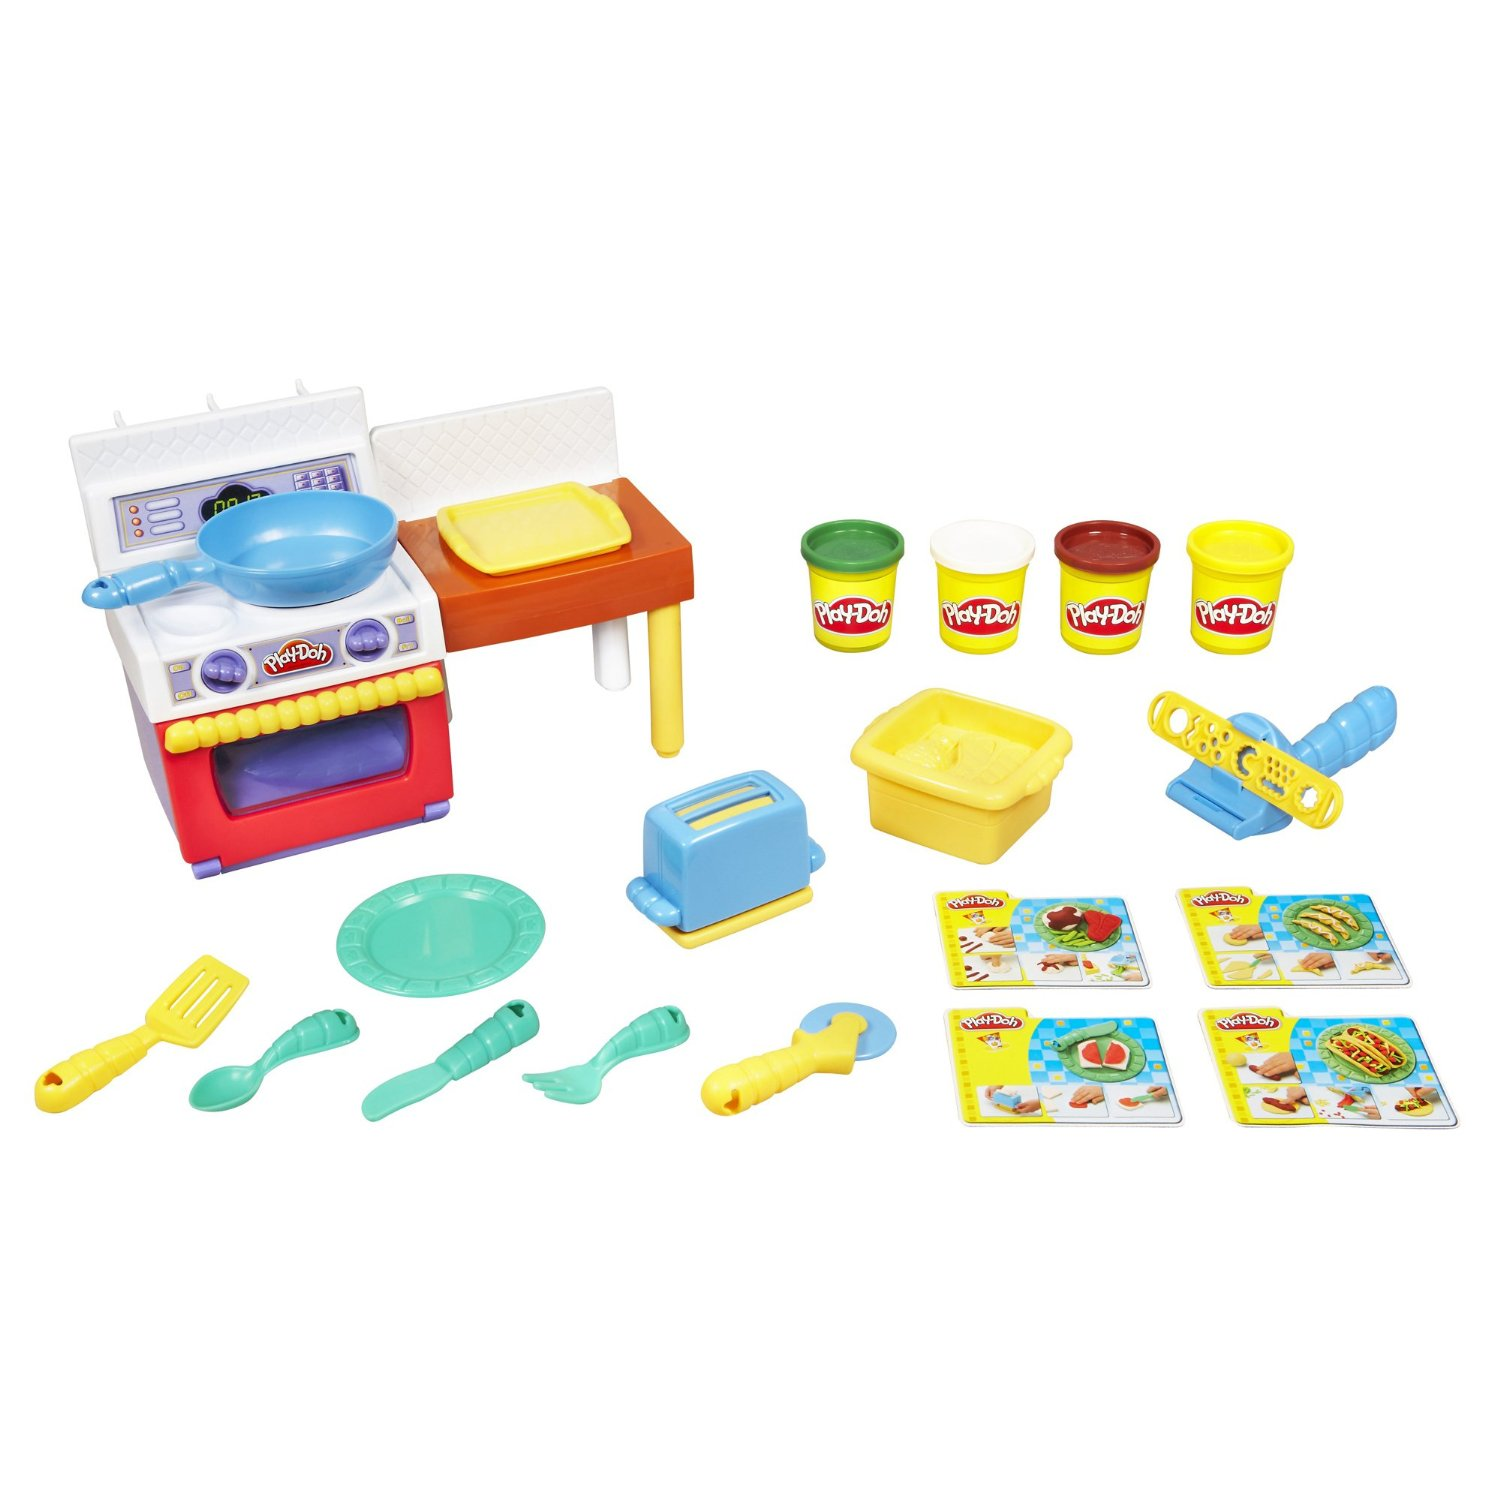 Play Doh Fun With Food - Meal Makin Kitchen Playset - Best ...